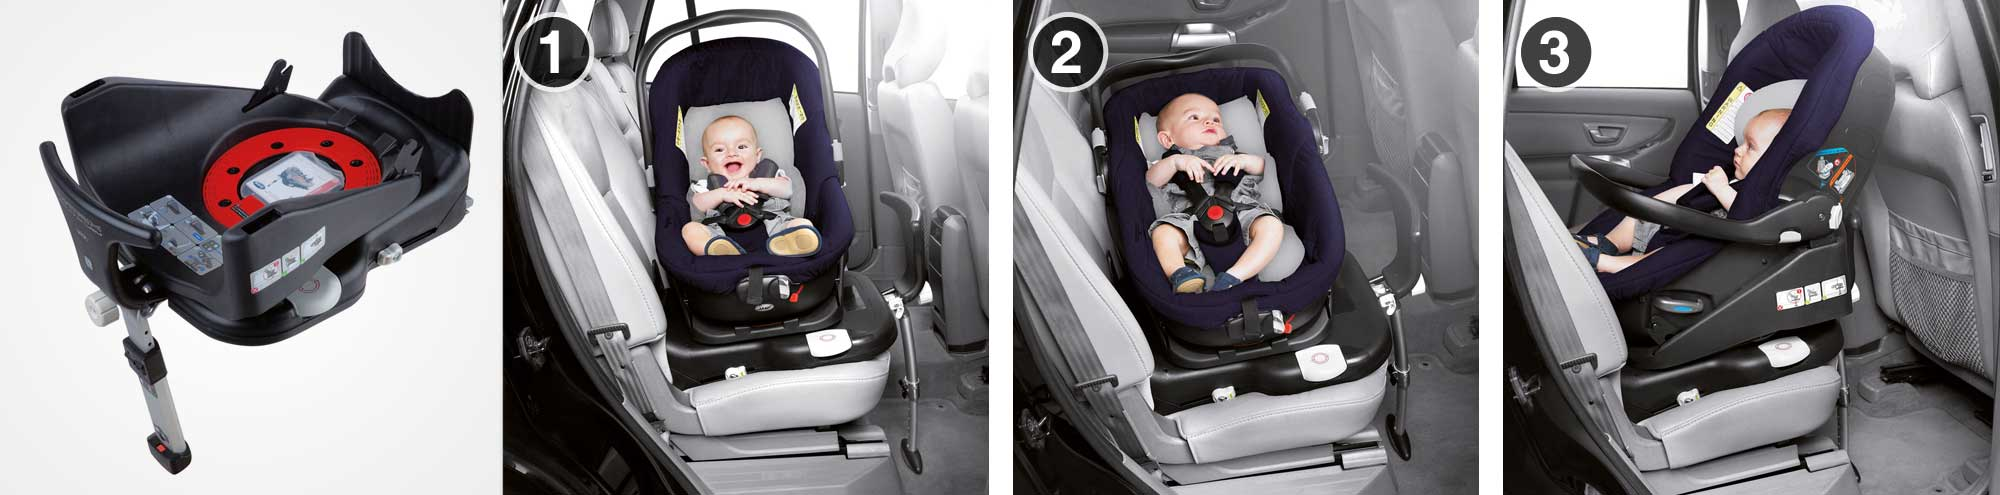 Isofix Sitzerhöhung Lösen Matrix Light 2 The Only Lie Flat Car Seat